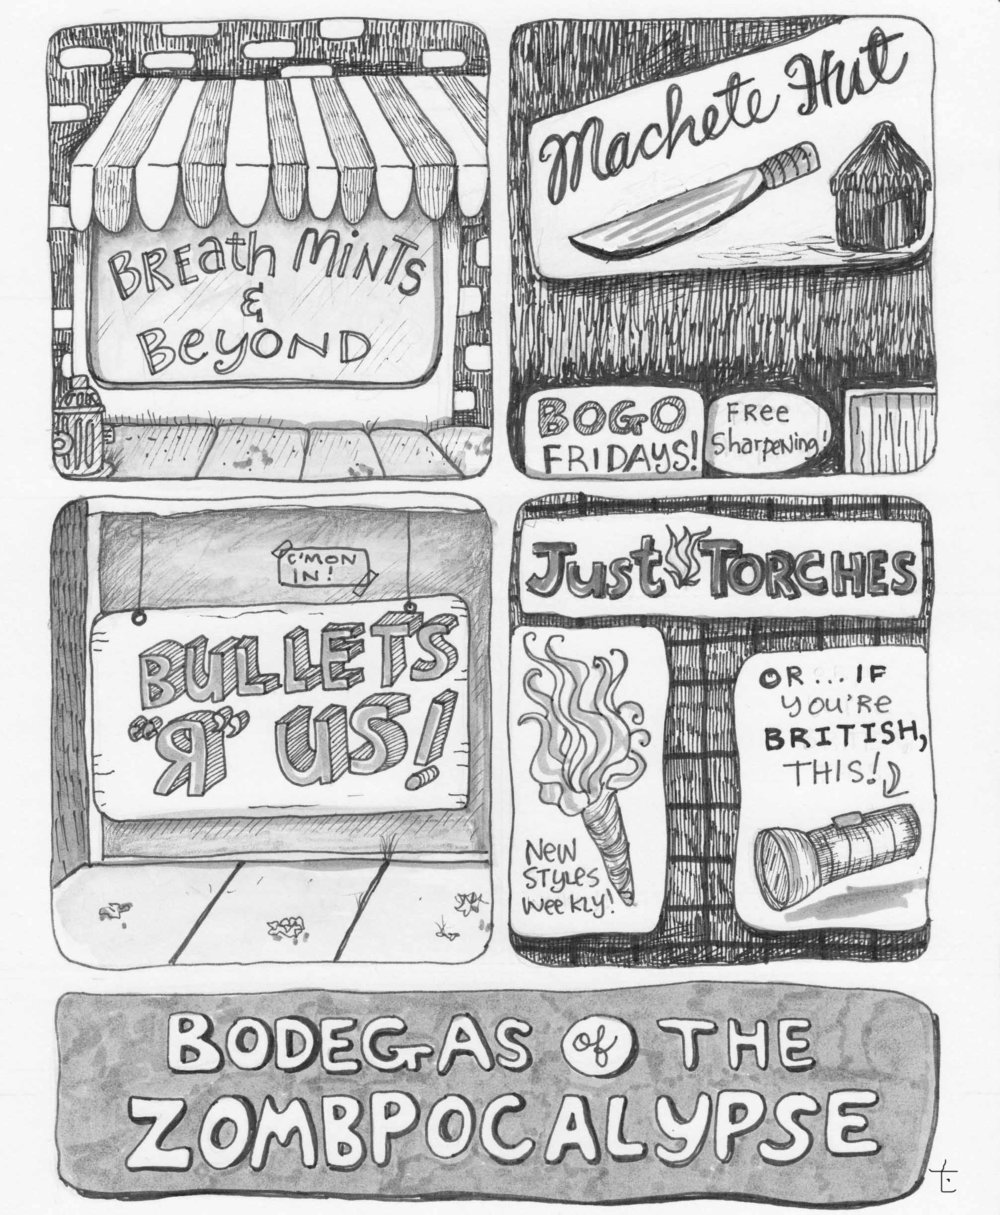 Bodegas of the Zombpocalypse.jpg